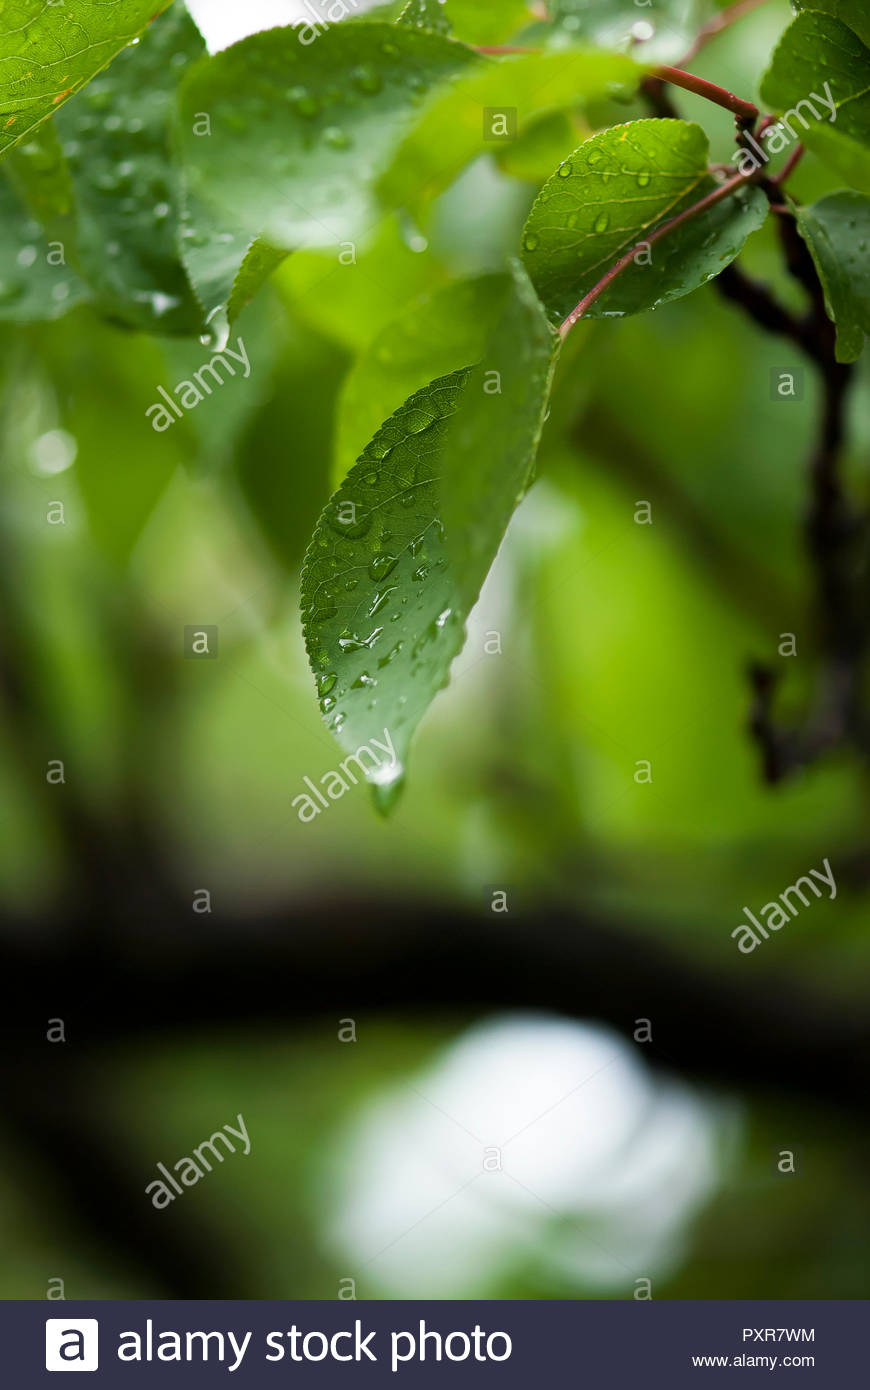 Rain drops drip on the leaves of a tree after a summer, afternoon shower. - Stock Image